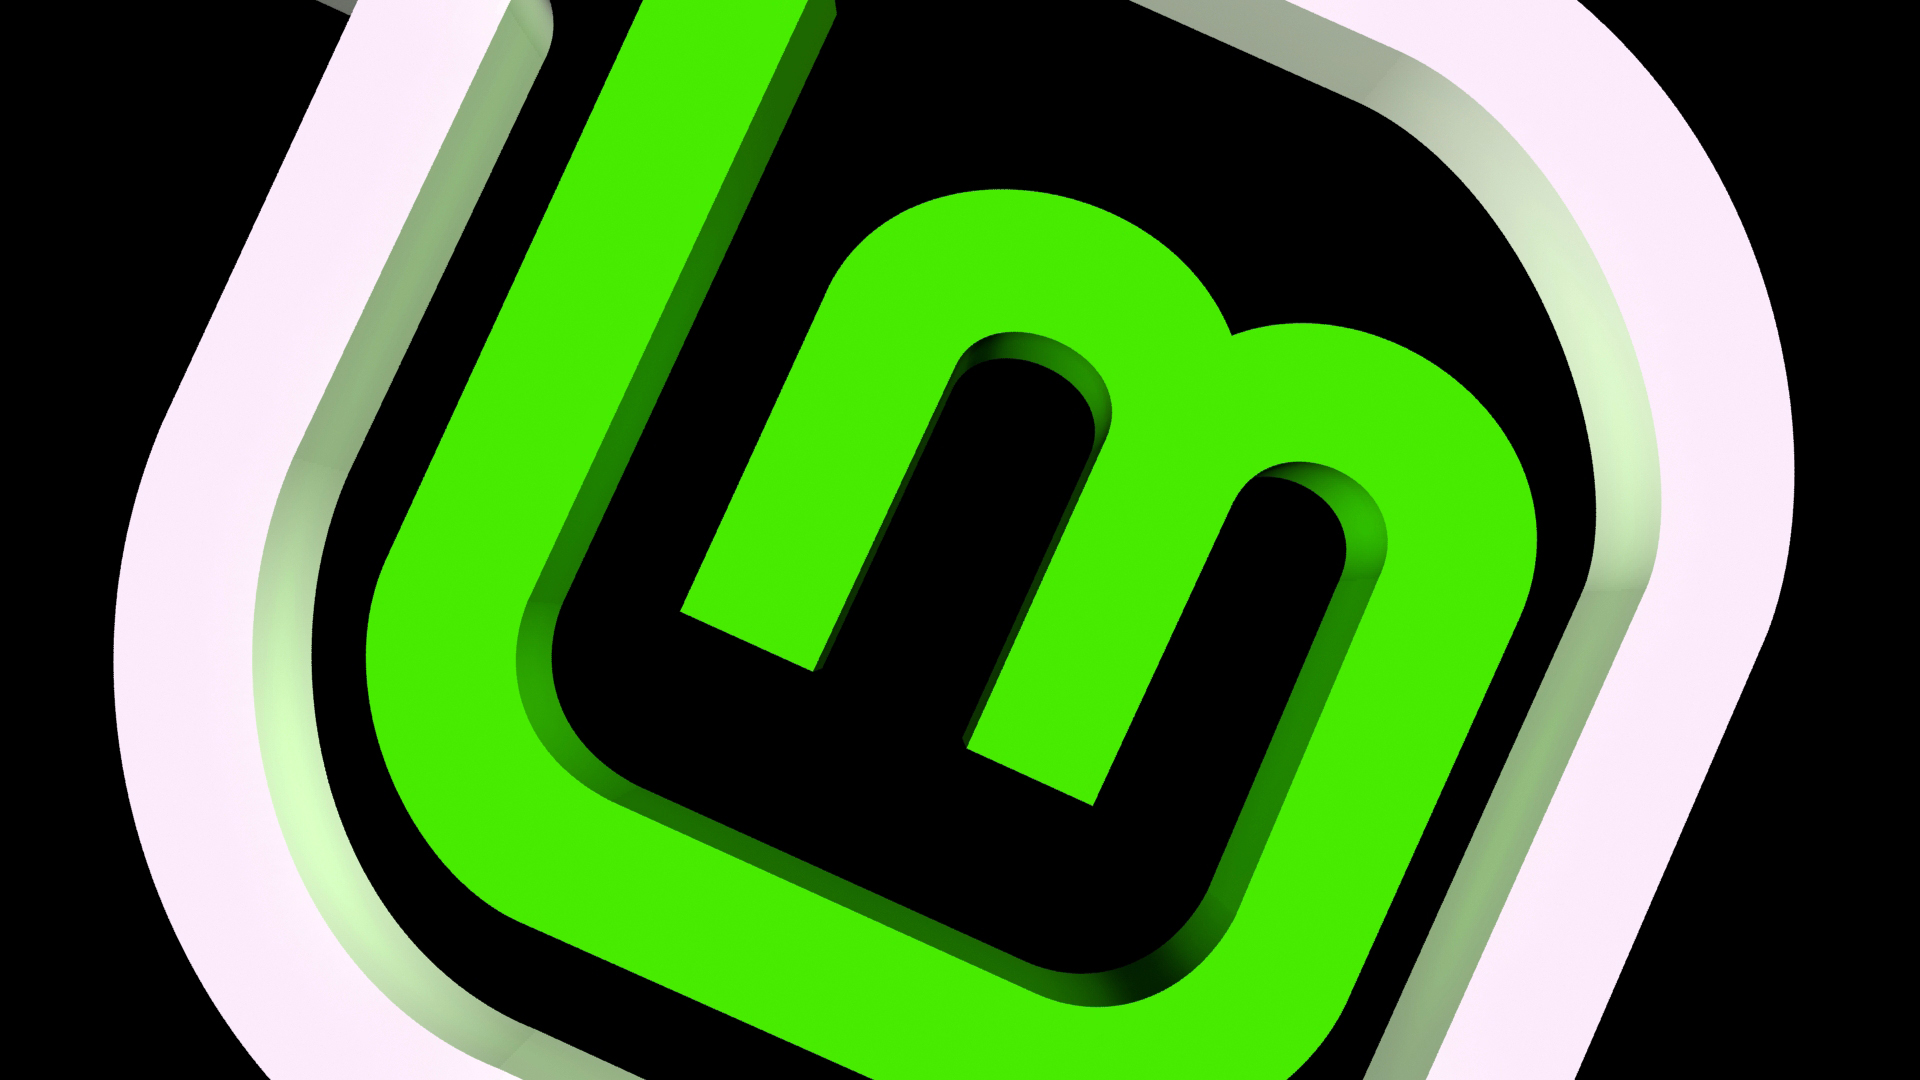 Abstract Free Wallpaper Linux Mint Wallpaper